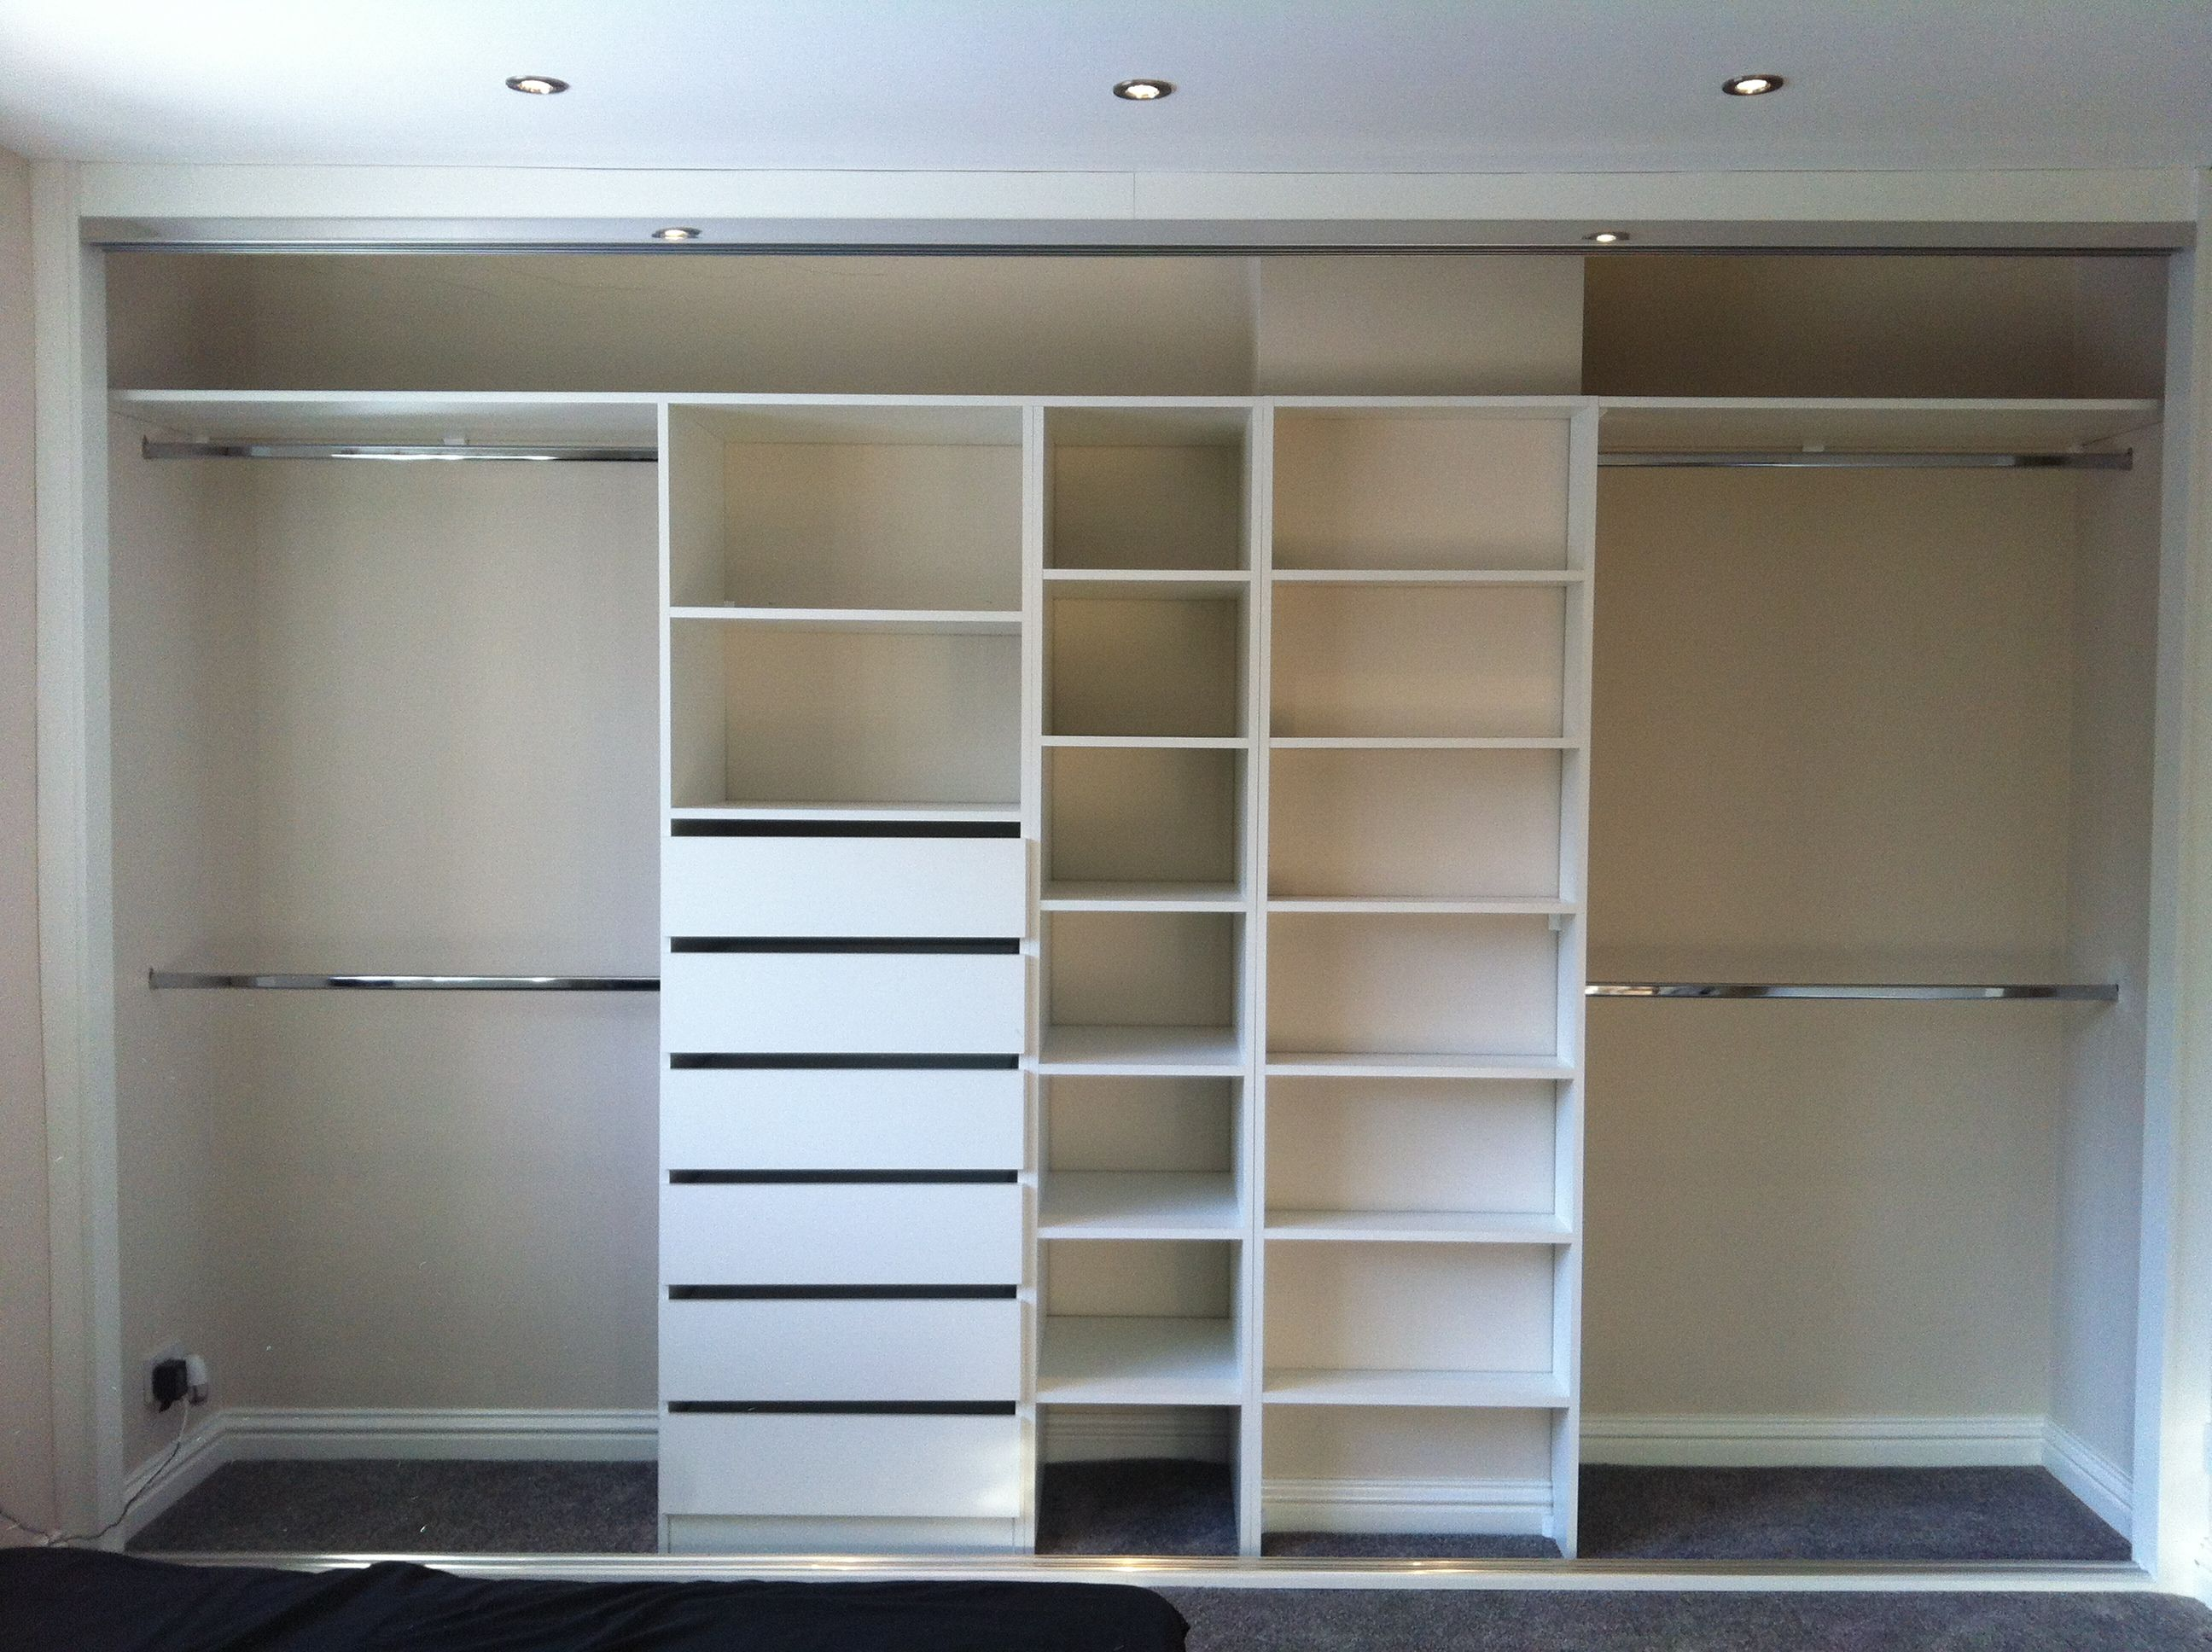 wardrobe,100% customized according to your requirment,design for